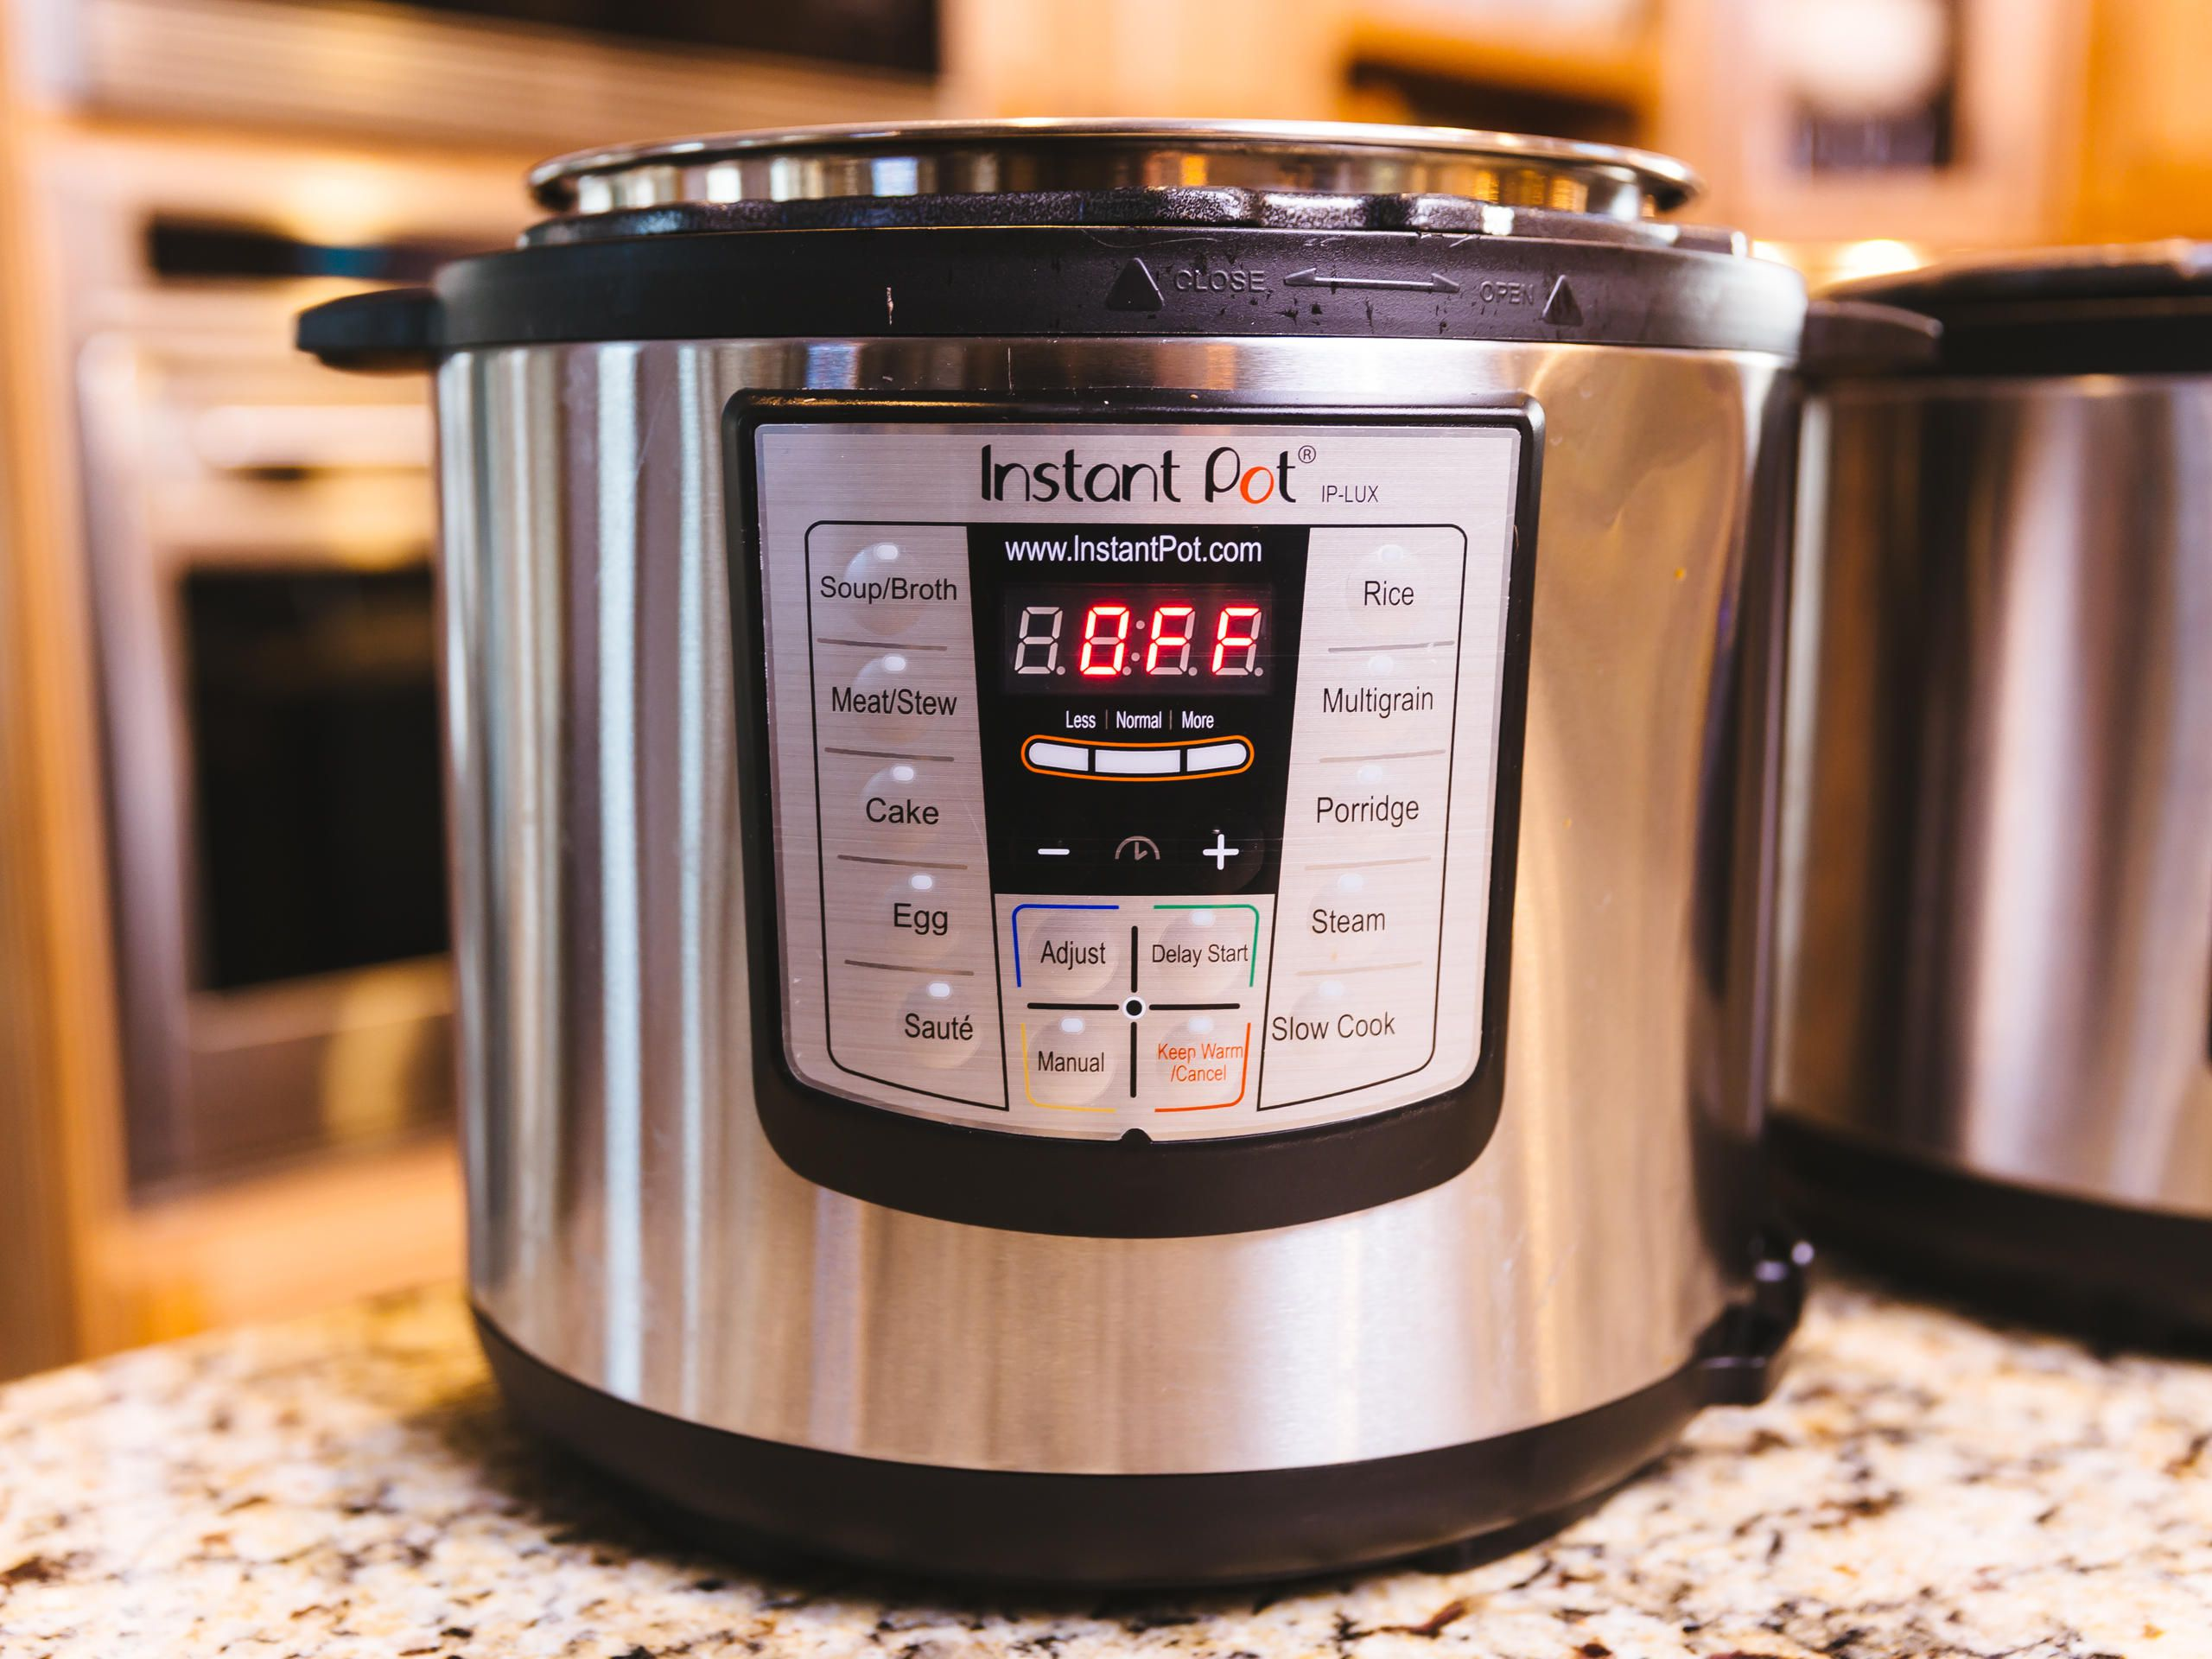 the instant pot photo